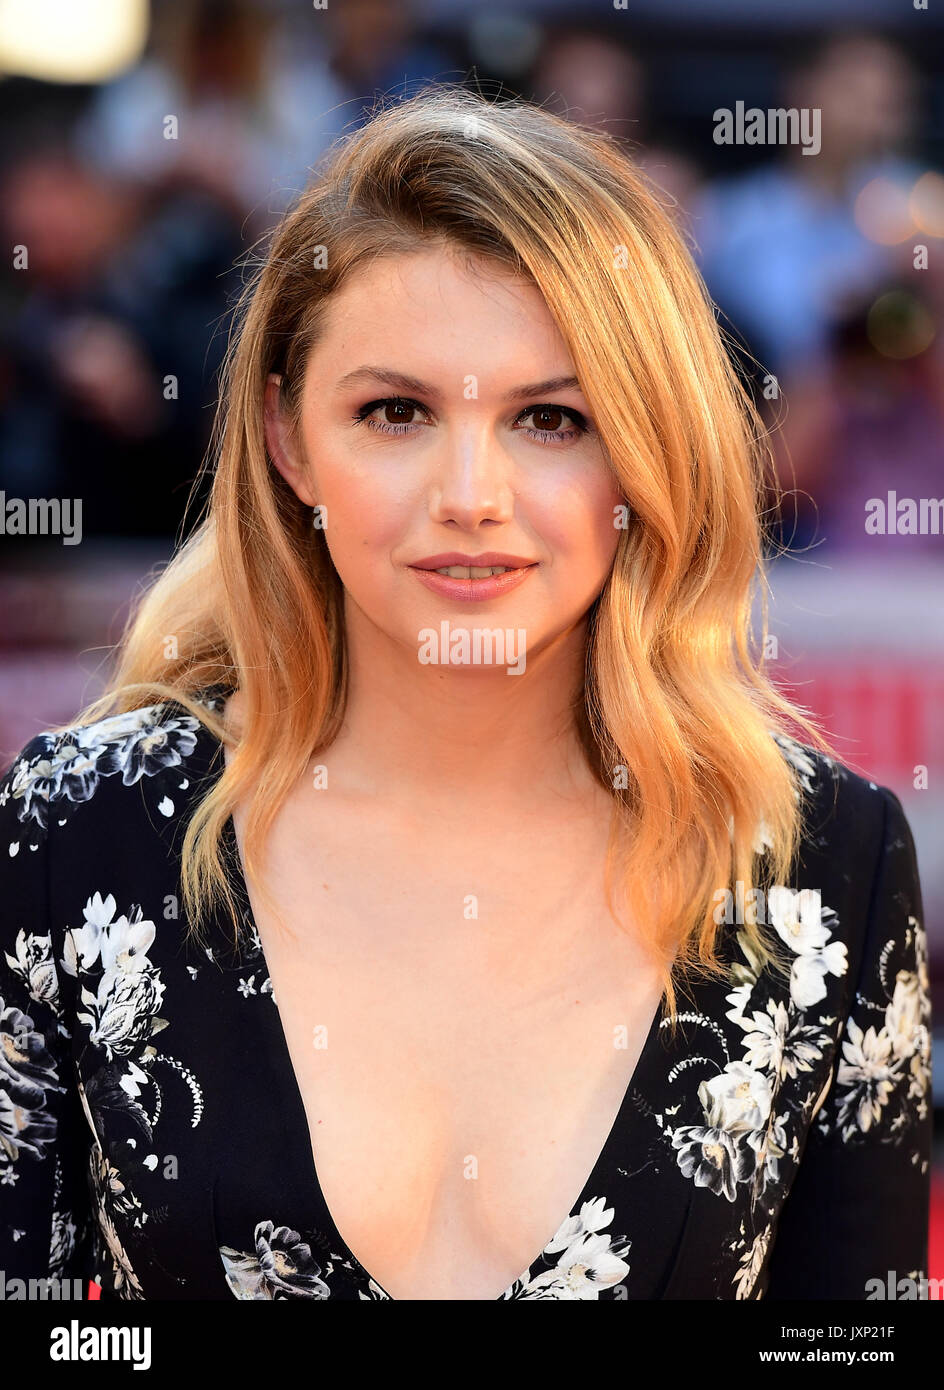 2019 Hannah Murray naked (37 photo), Sexy, Cleavage, Boobs, butt 2017